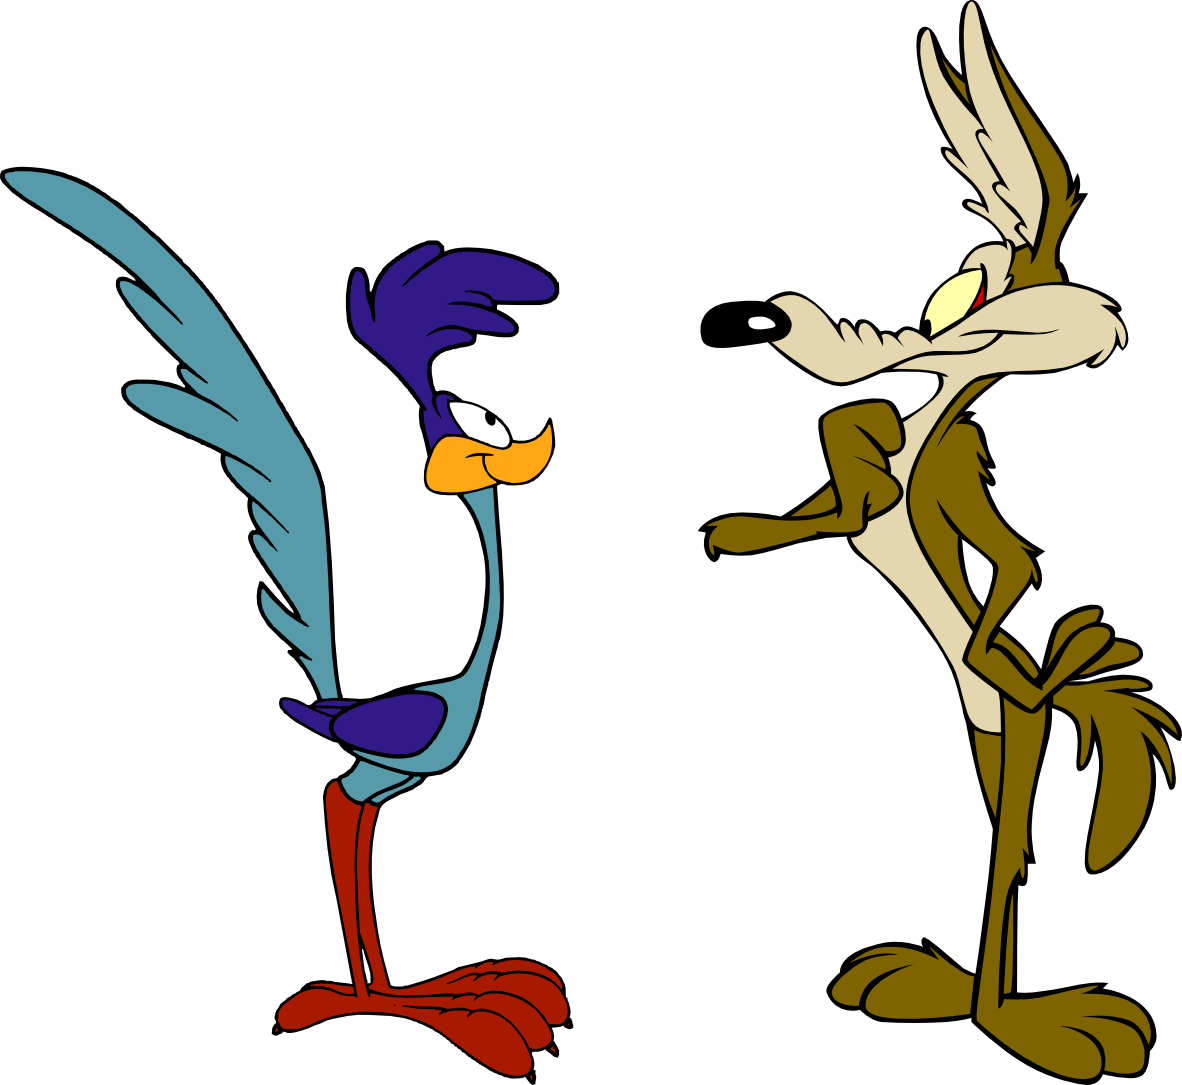 The Adventures Of Wile E Coyote And The Road Runner Miniseries Looney Tunes Characters Classic Cartoon Characters Old Cartoons